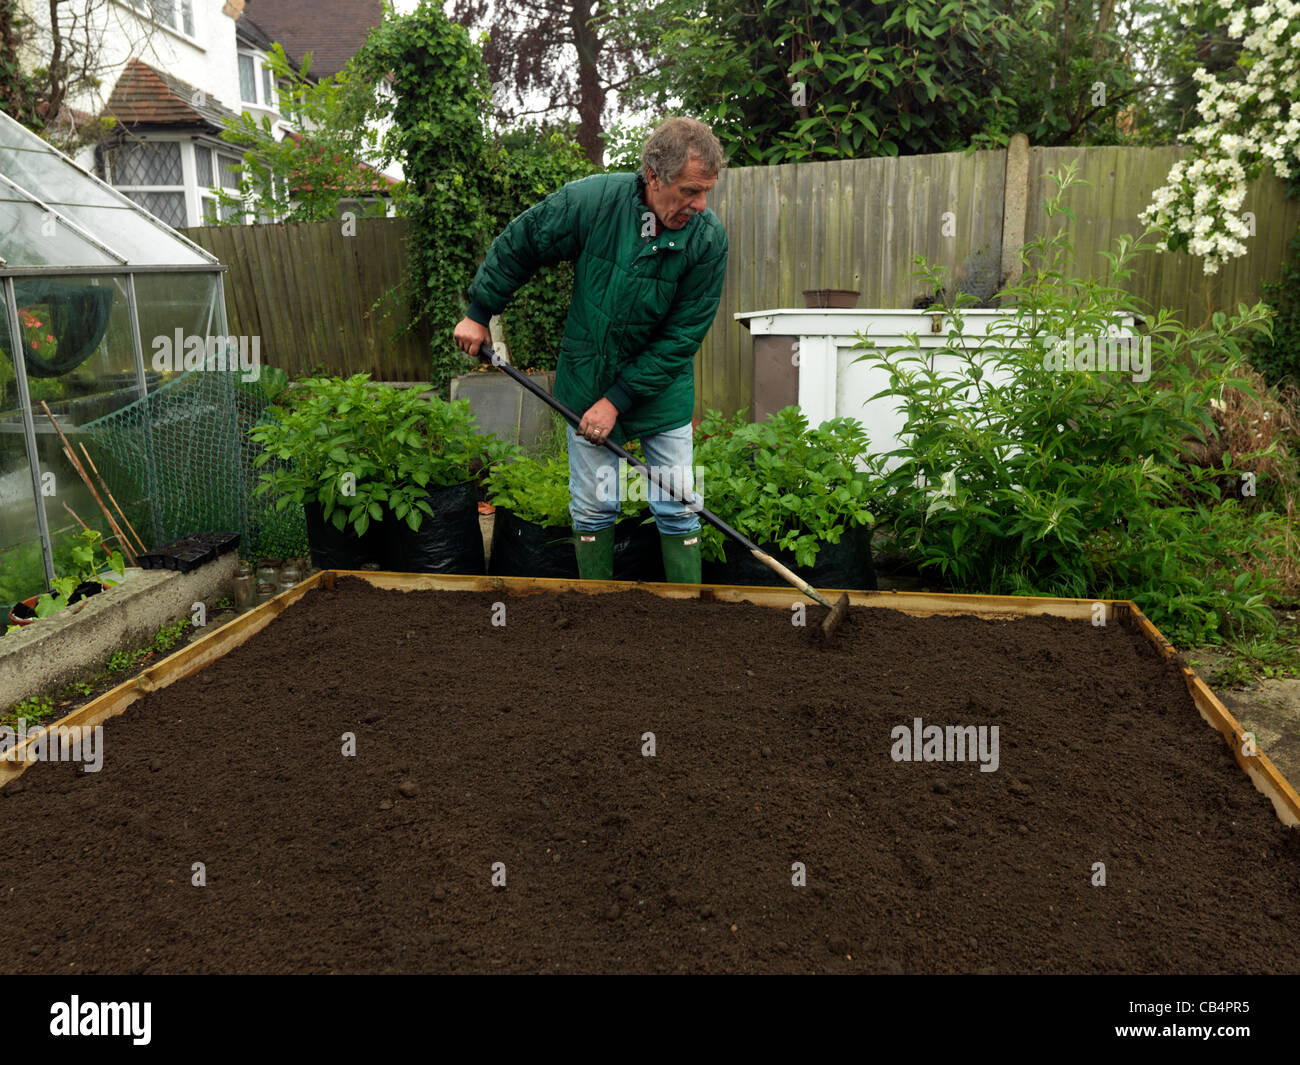 Man Making a Raised Bed Raking the Soil Prior to Planting the Seed ...